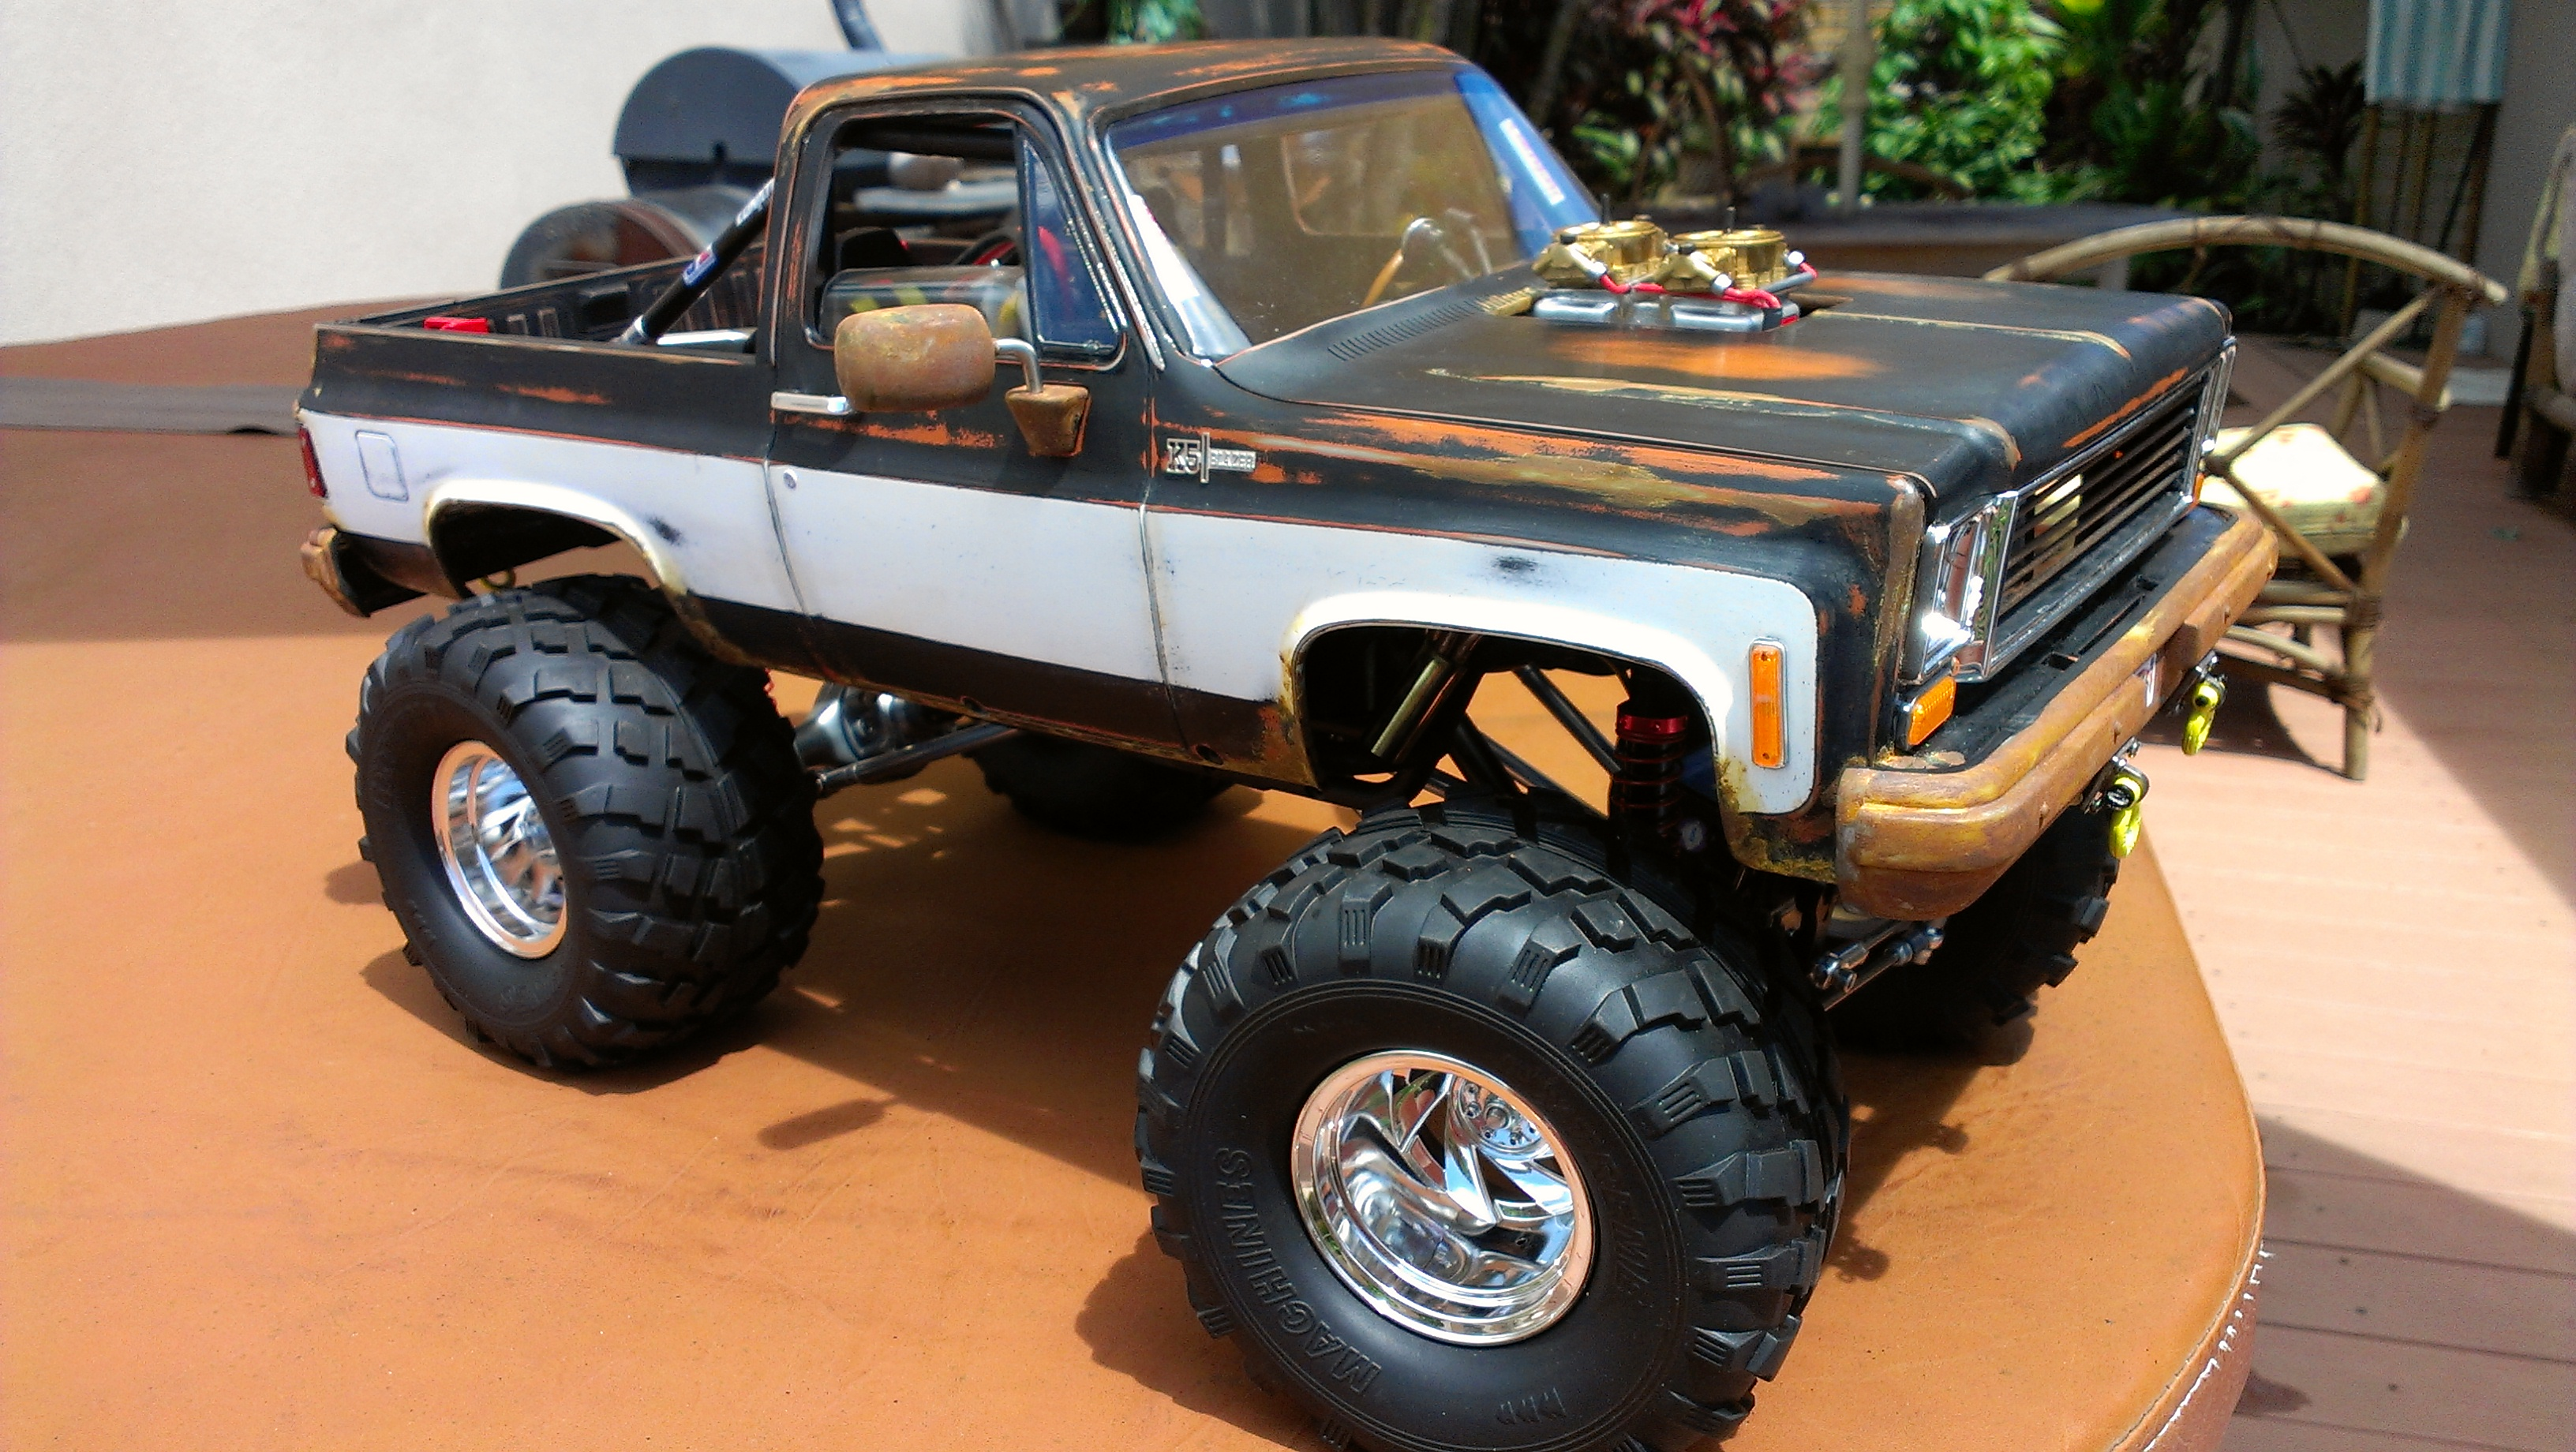 rcx cars with Axial Wraithrc4wd Blazer Hybrid Readers Ride on Hammer S Front Race Wheel furthermore 6 Inch Lift Kit For Dodge Ram 2500 Diesel besides Jeep Xj Cherokee 1984 2001 also Project Traxxas Drag Bandit also Tamiya 190mm Sumo Power Nissan Gtr.